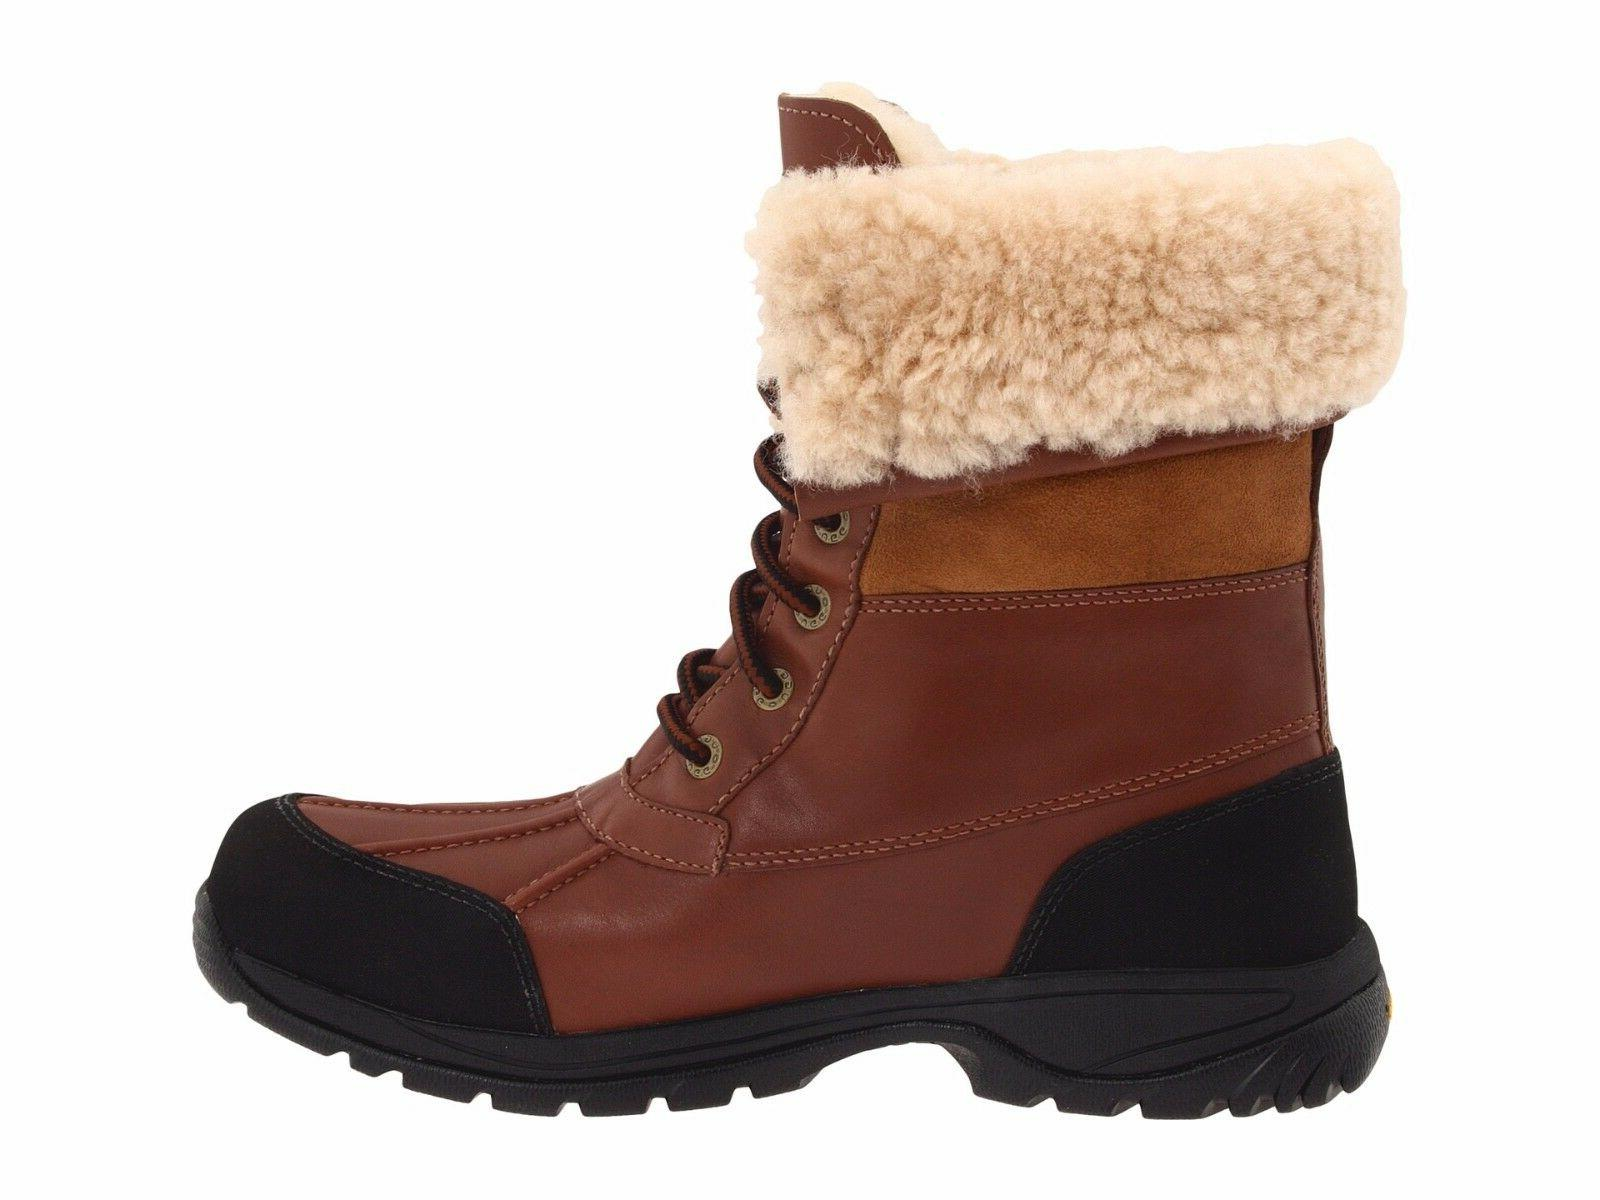 Authentic UGG Butte Winter Waterproof Leather Ski Snow Shoes